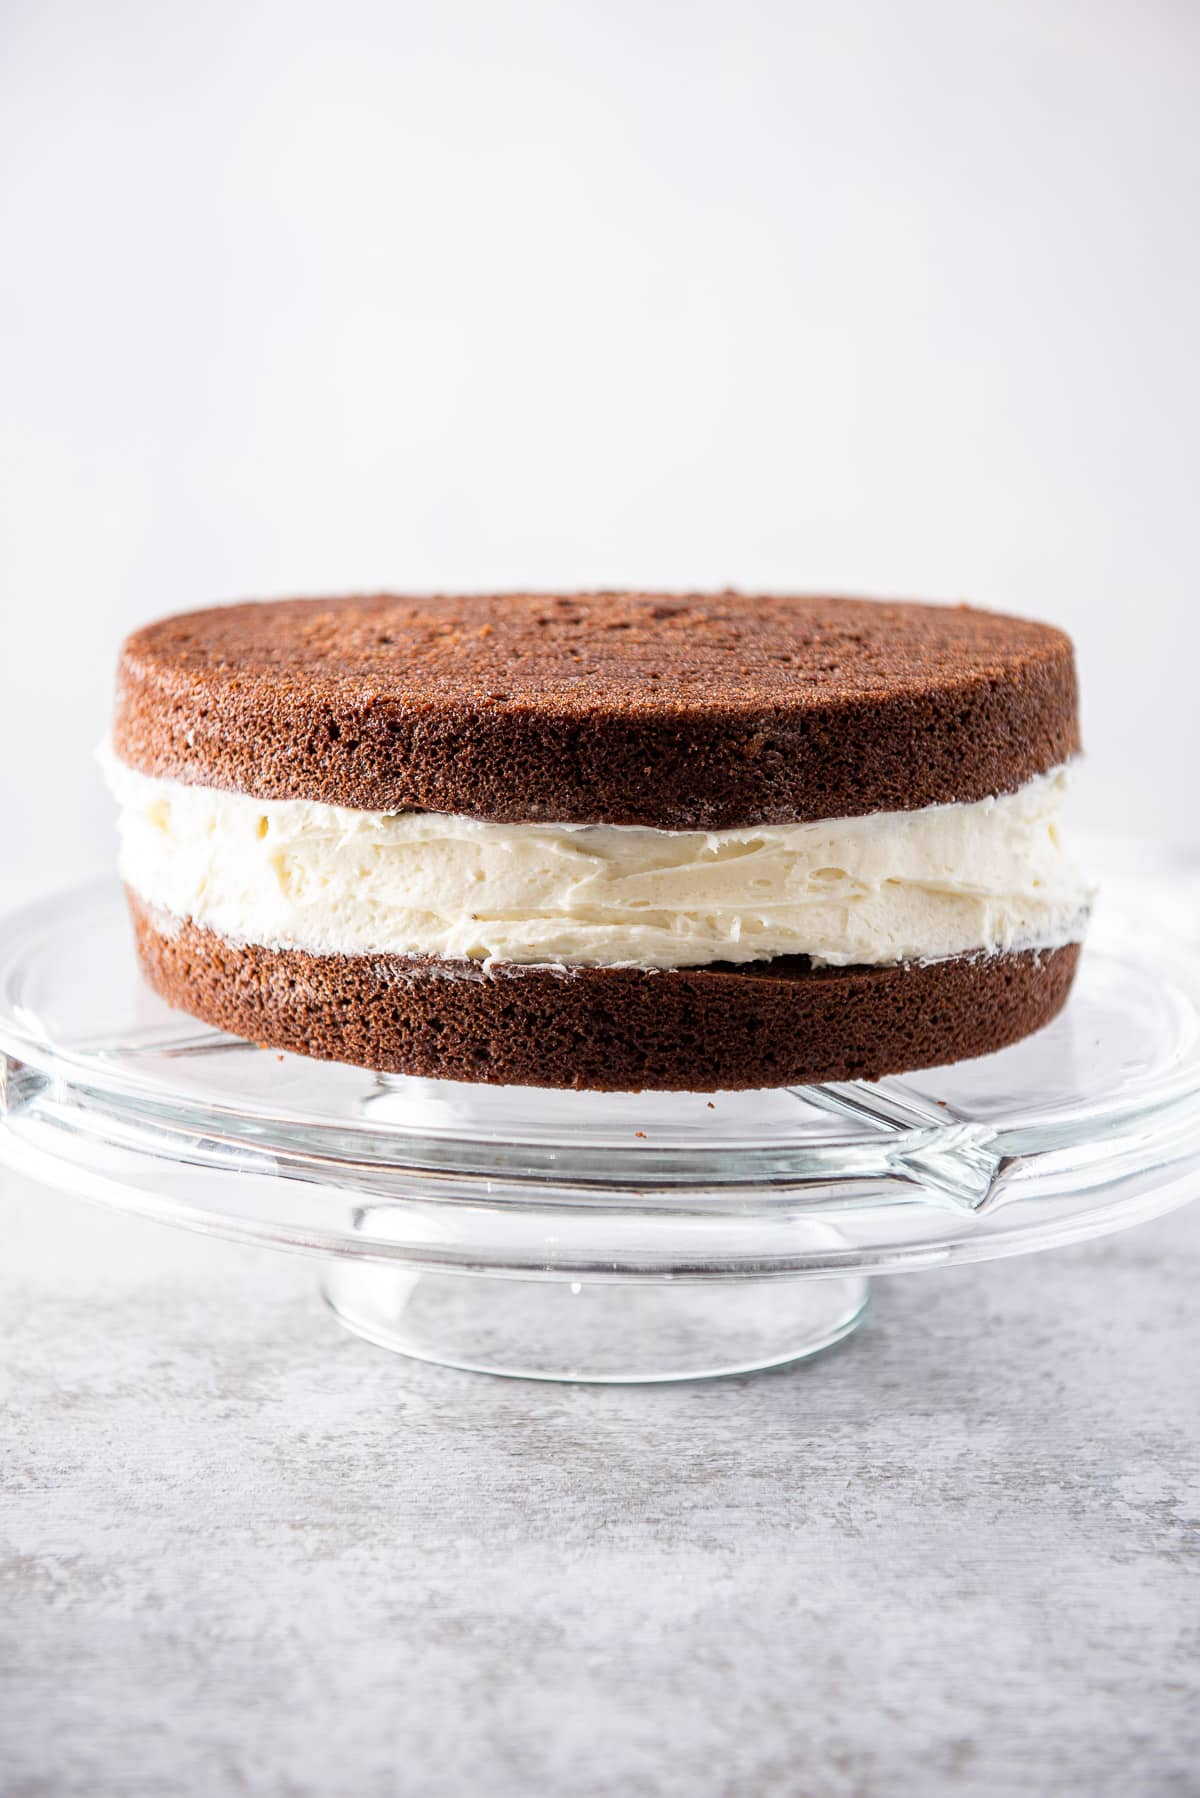 Vertical view of the chocolate cake with a big layer of frosting on a glass pedestal